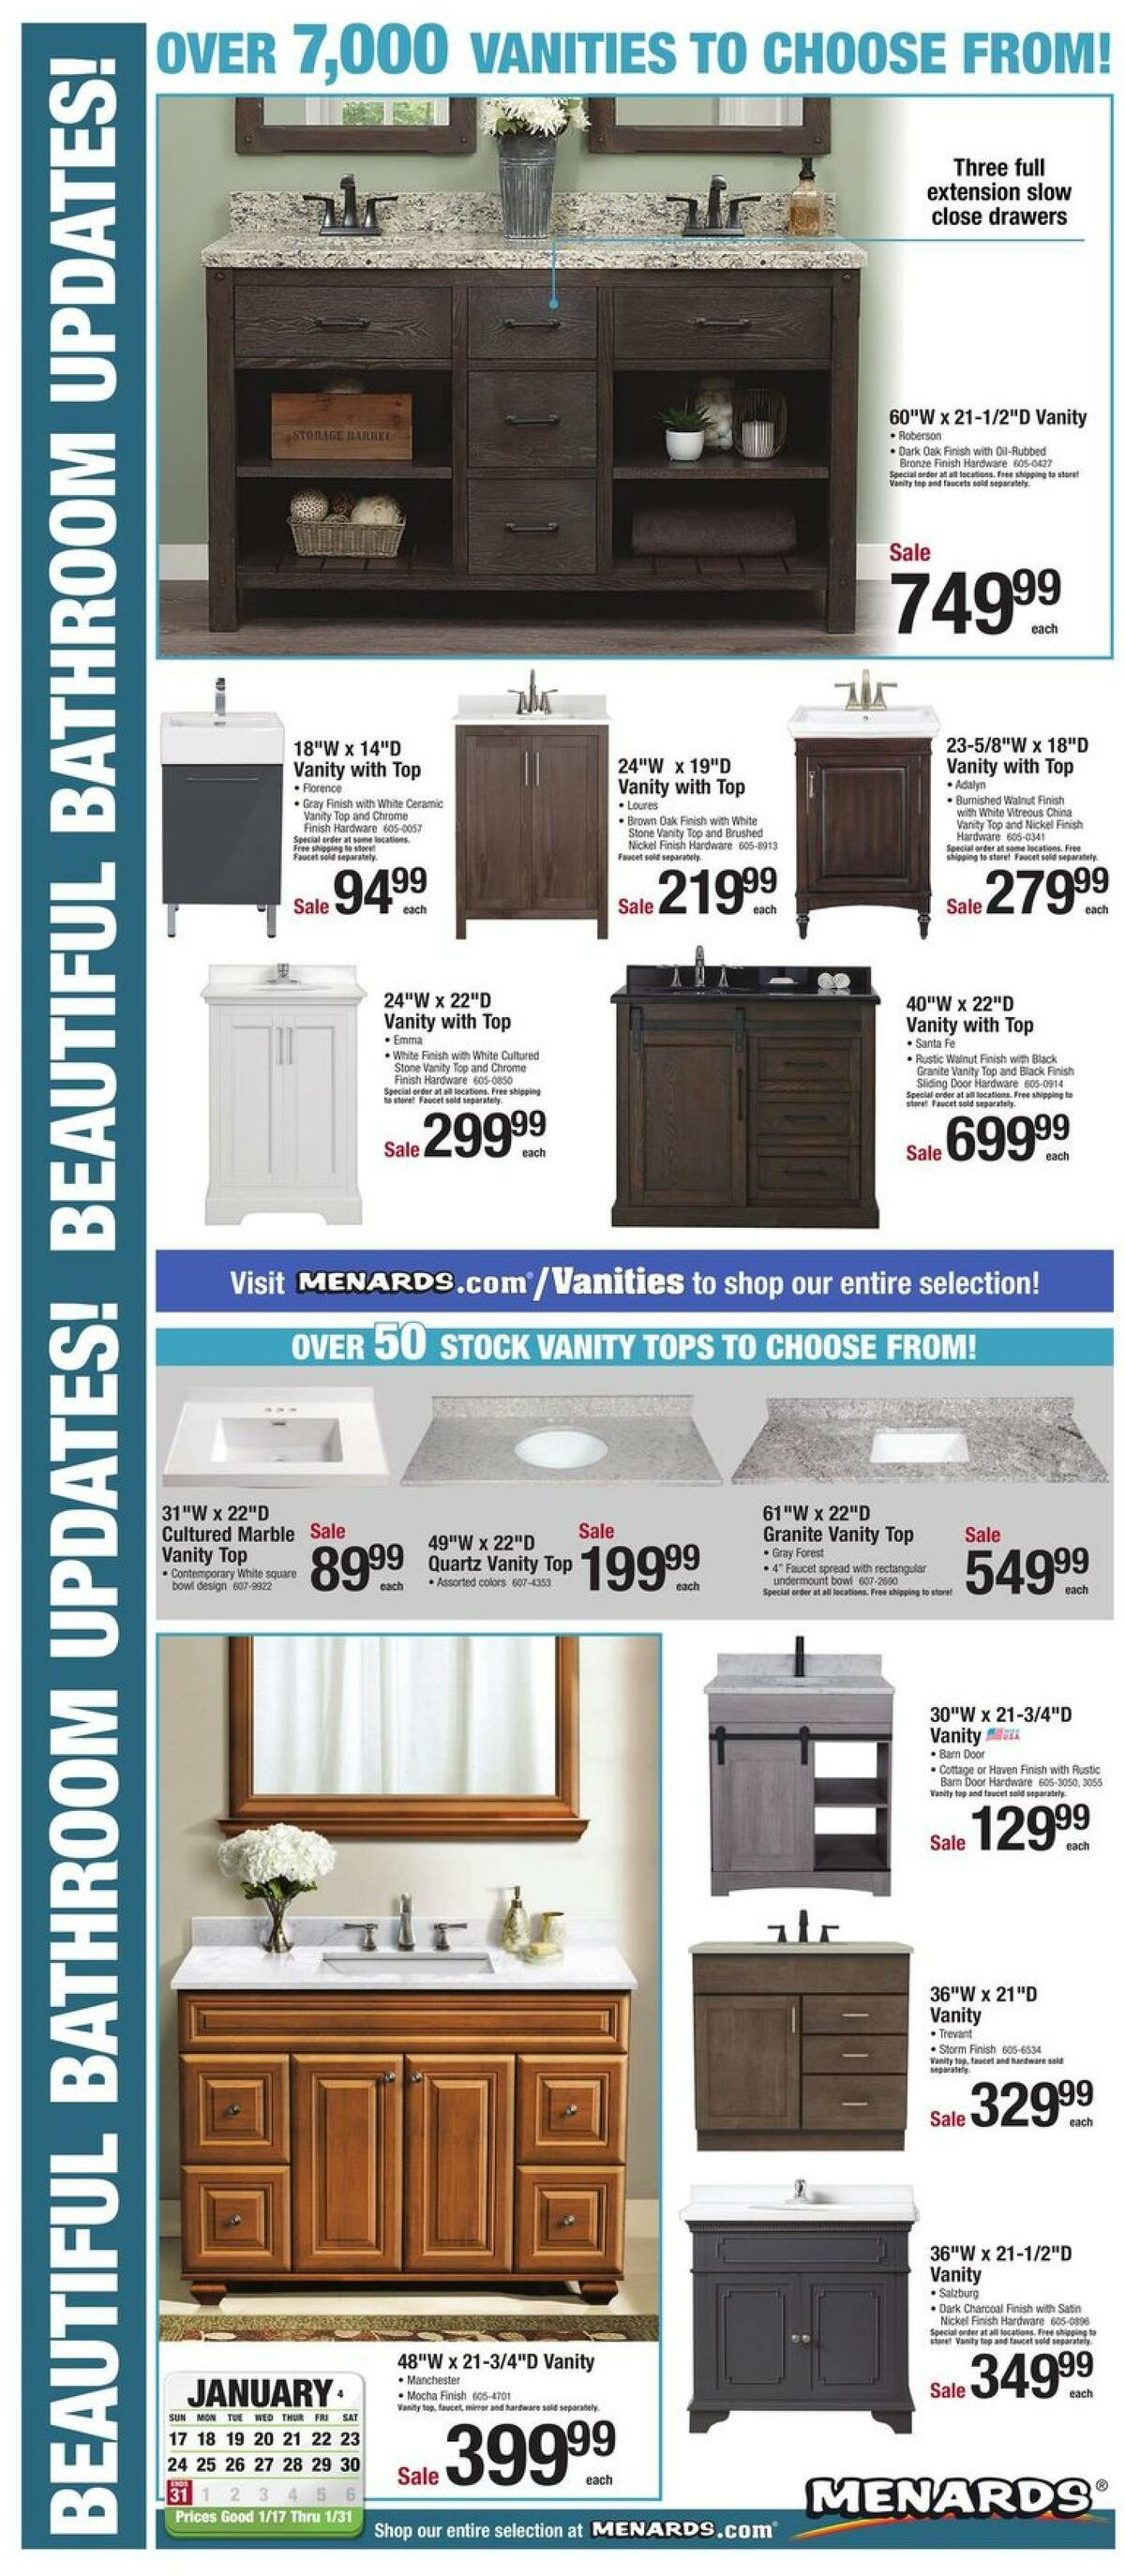 Menards Bath Weekly Ad from January 17